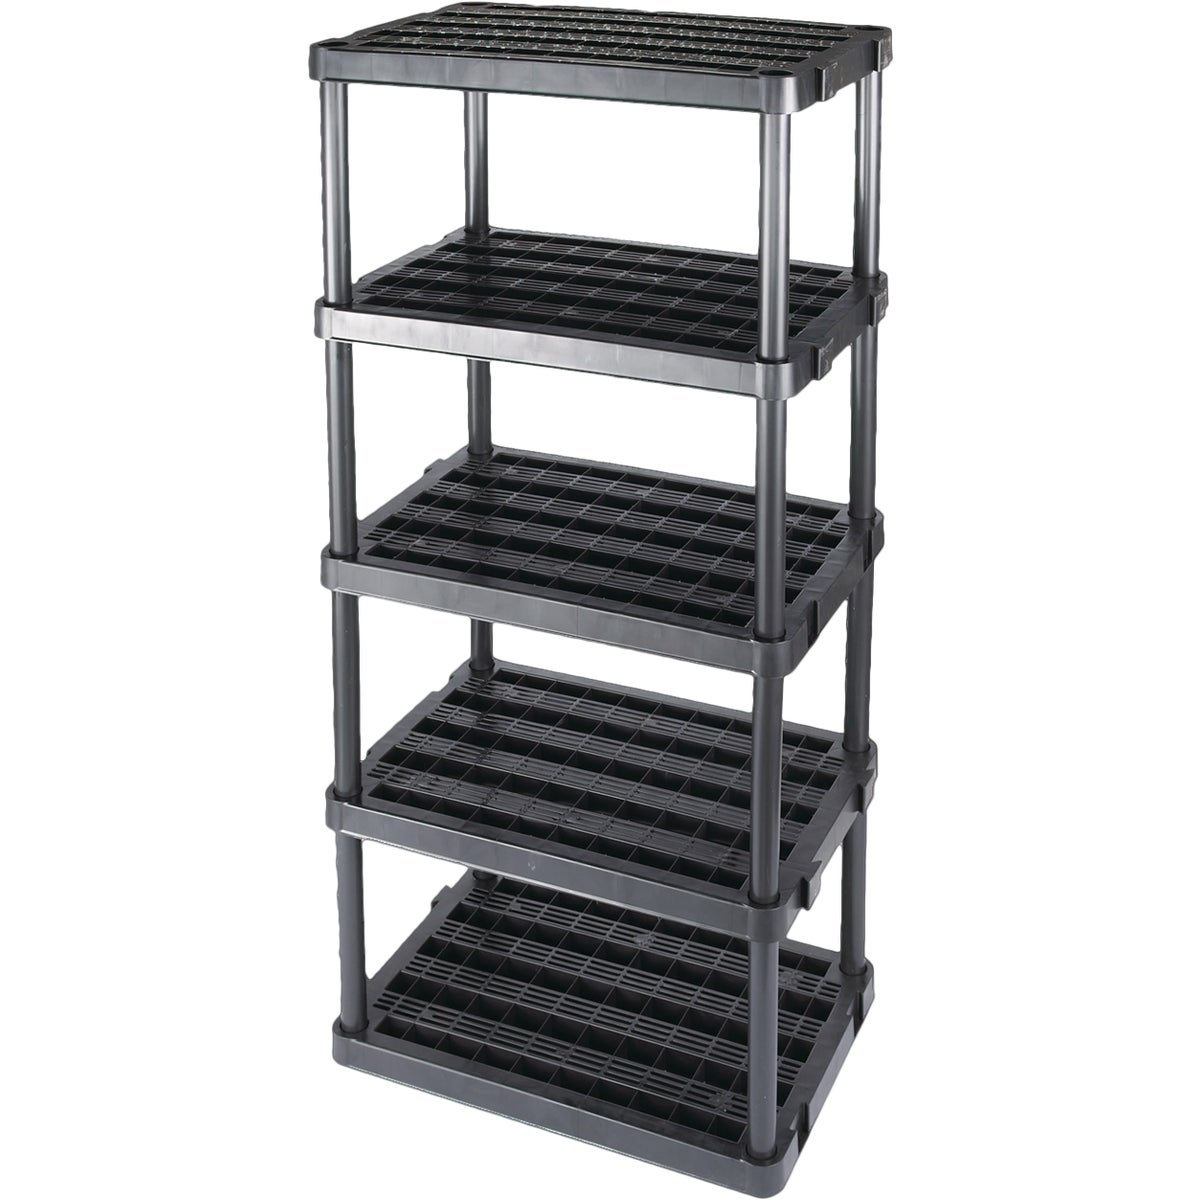 5 TIER 72X36X24 SHELF